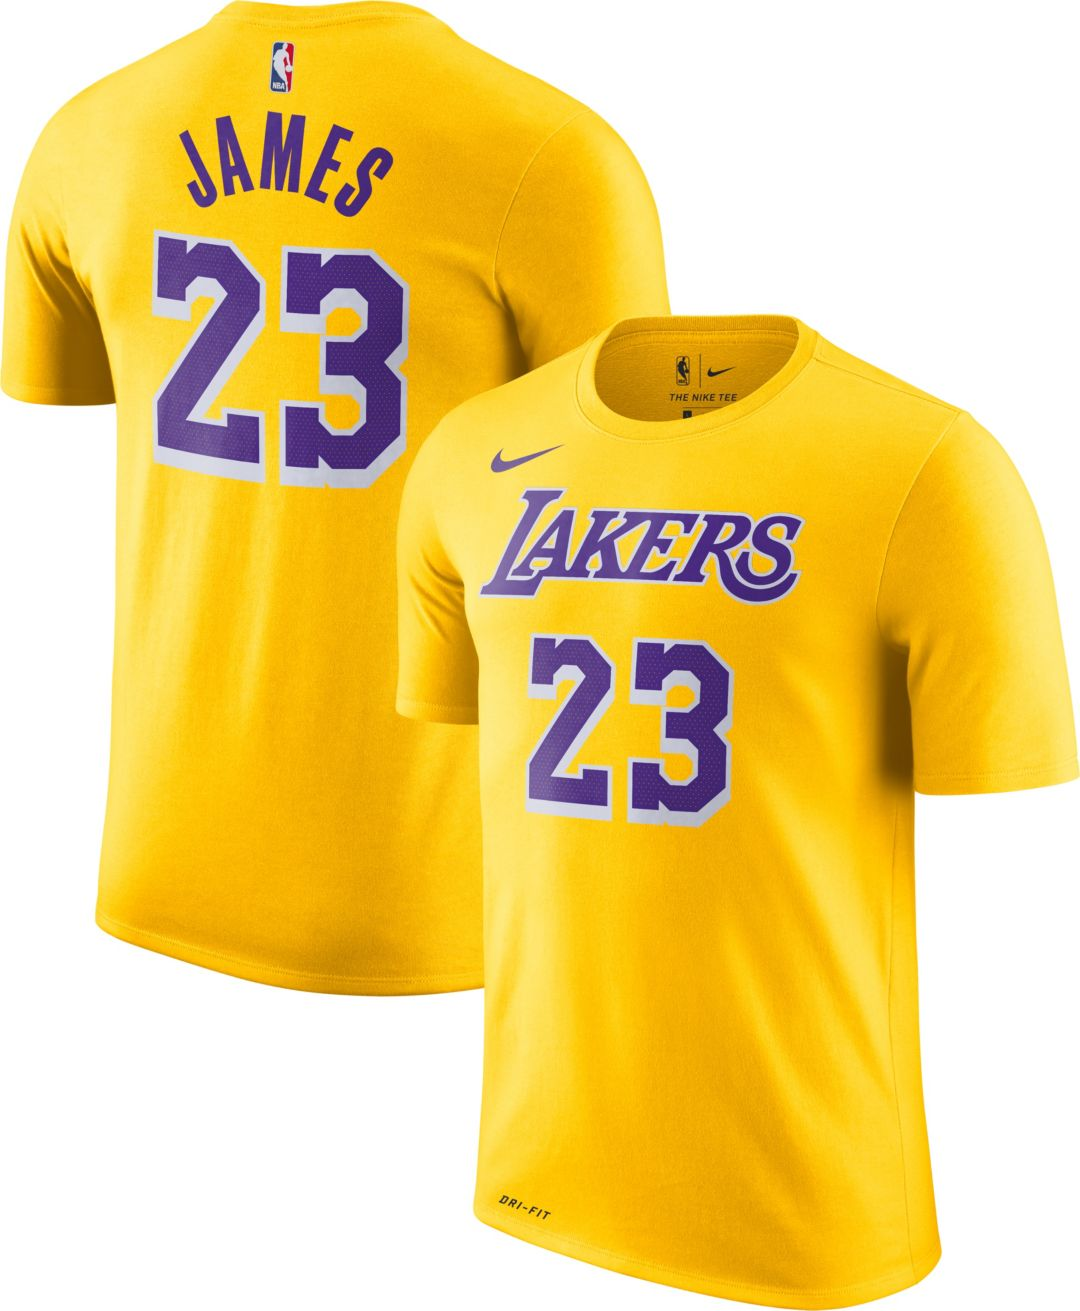 brand new 43507 9bece Nike Youth Los Angeles Lakers LeBron James Dri-FIT Gold T-Shirt